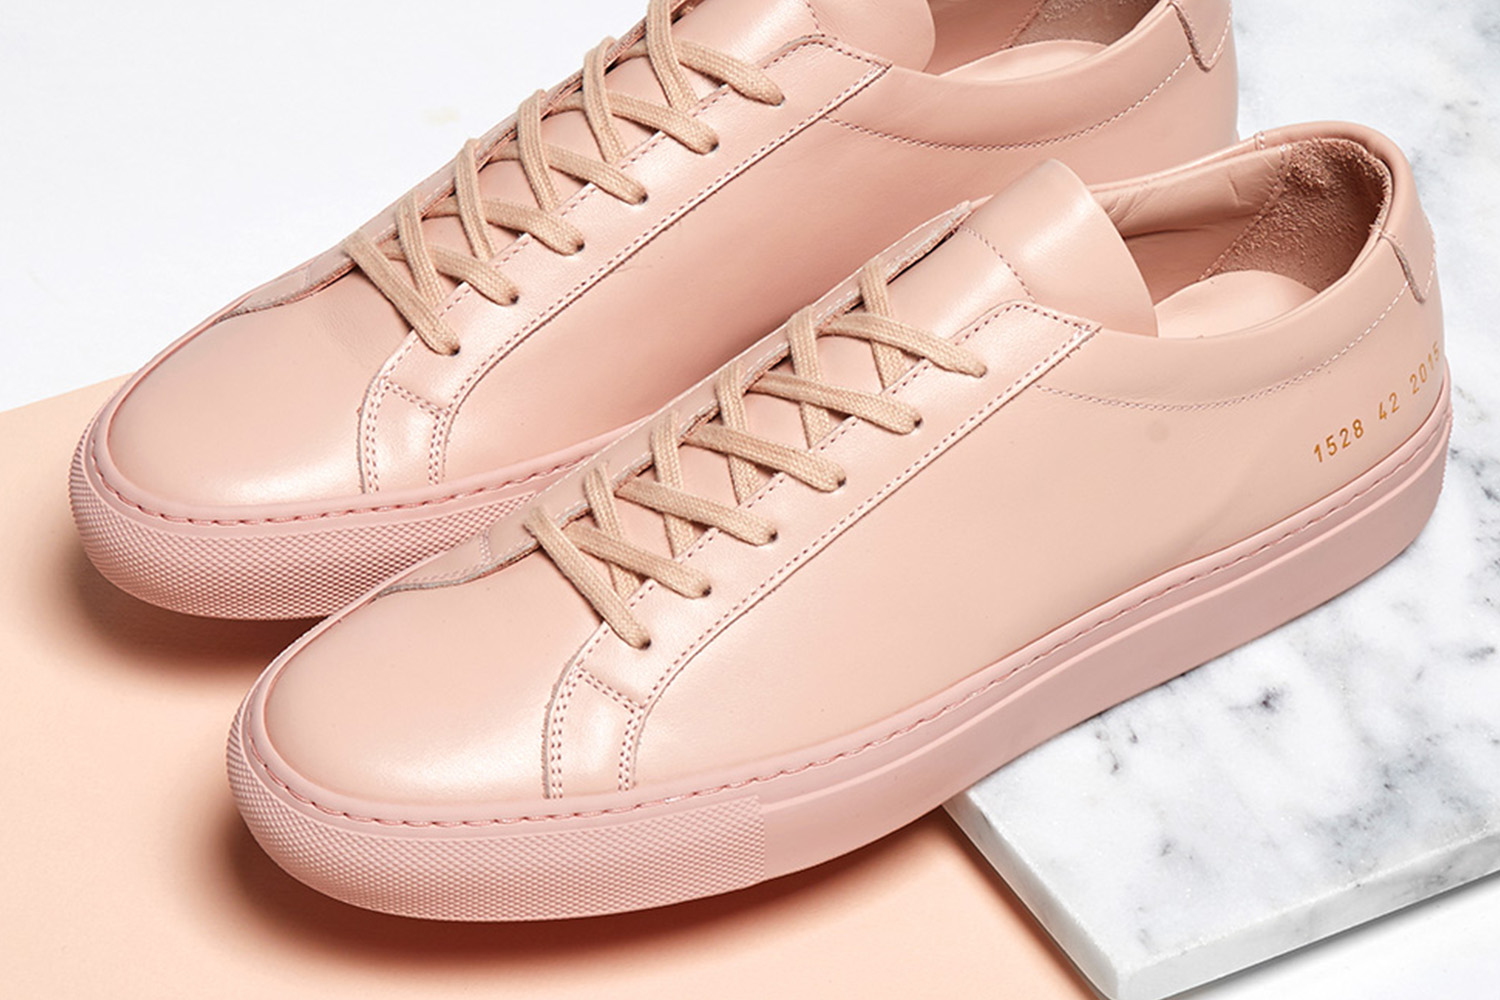 Common Projects Spring 2017 Collection Lands At END Clothing